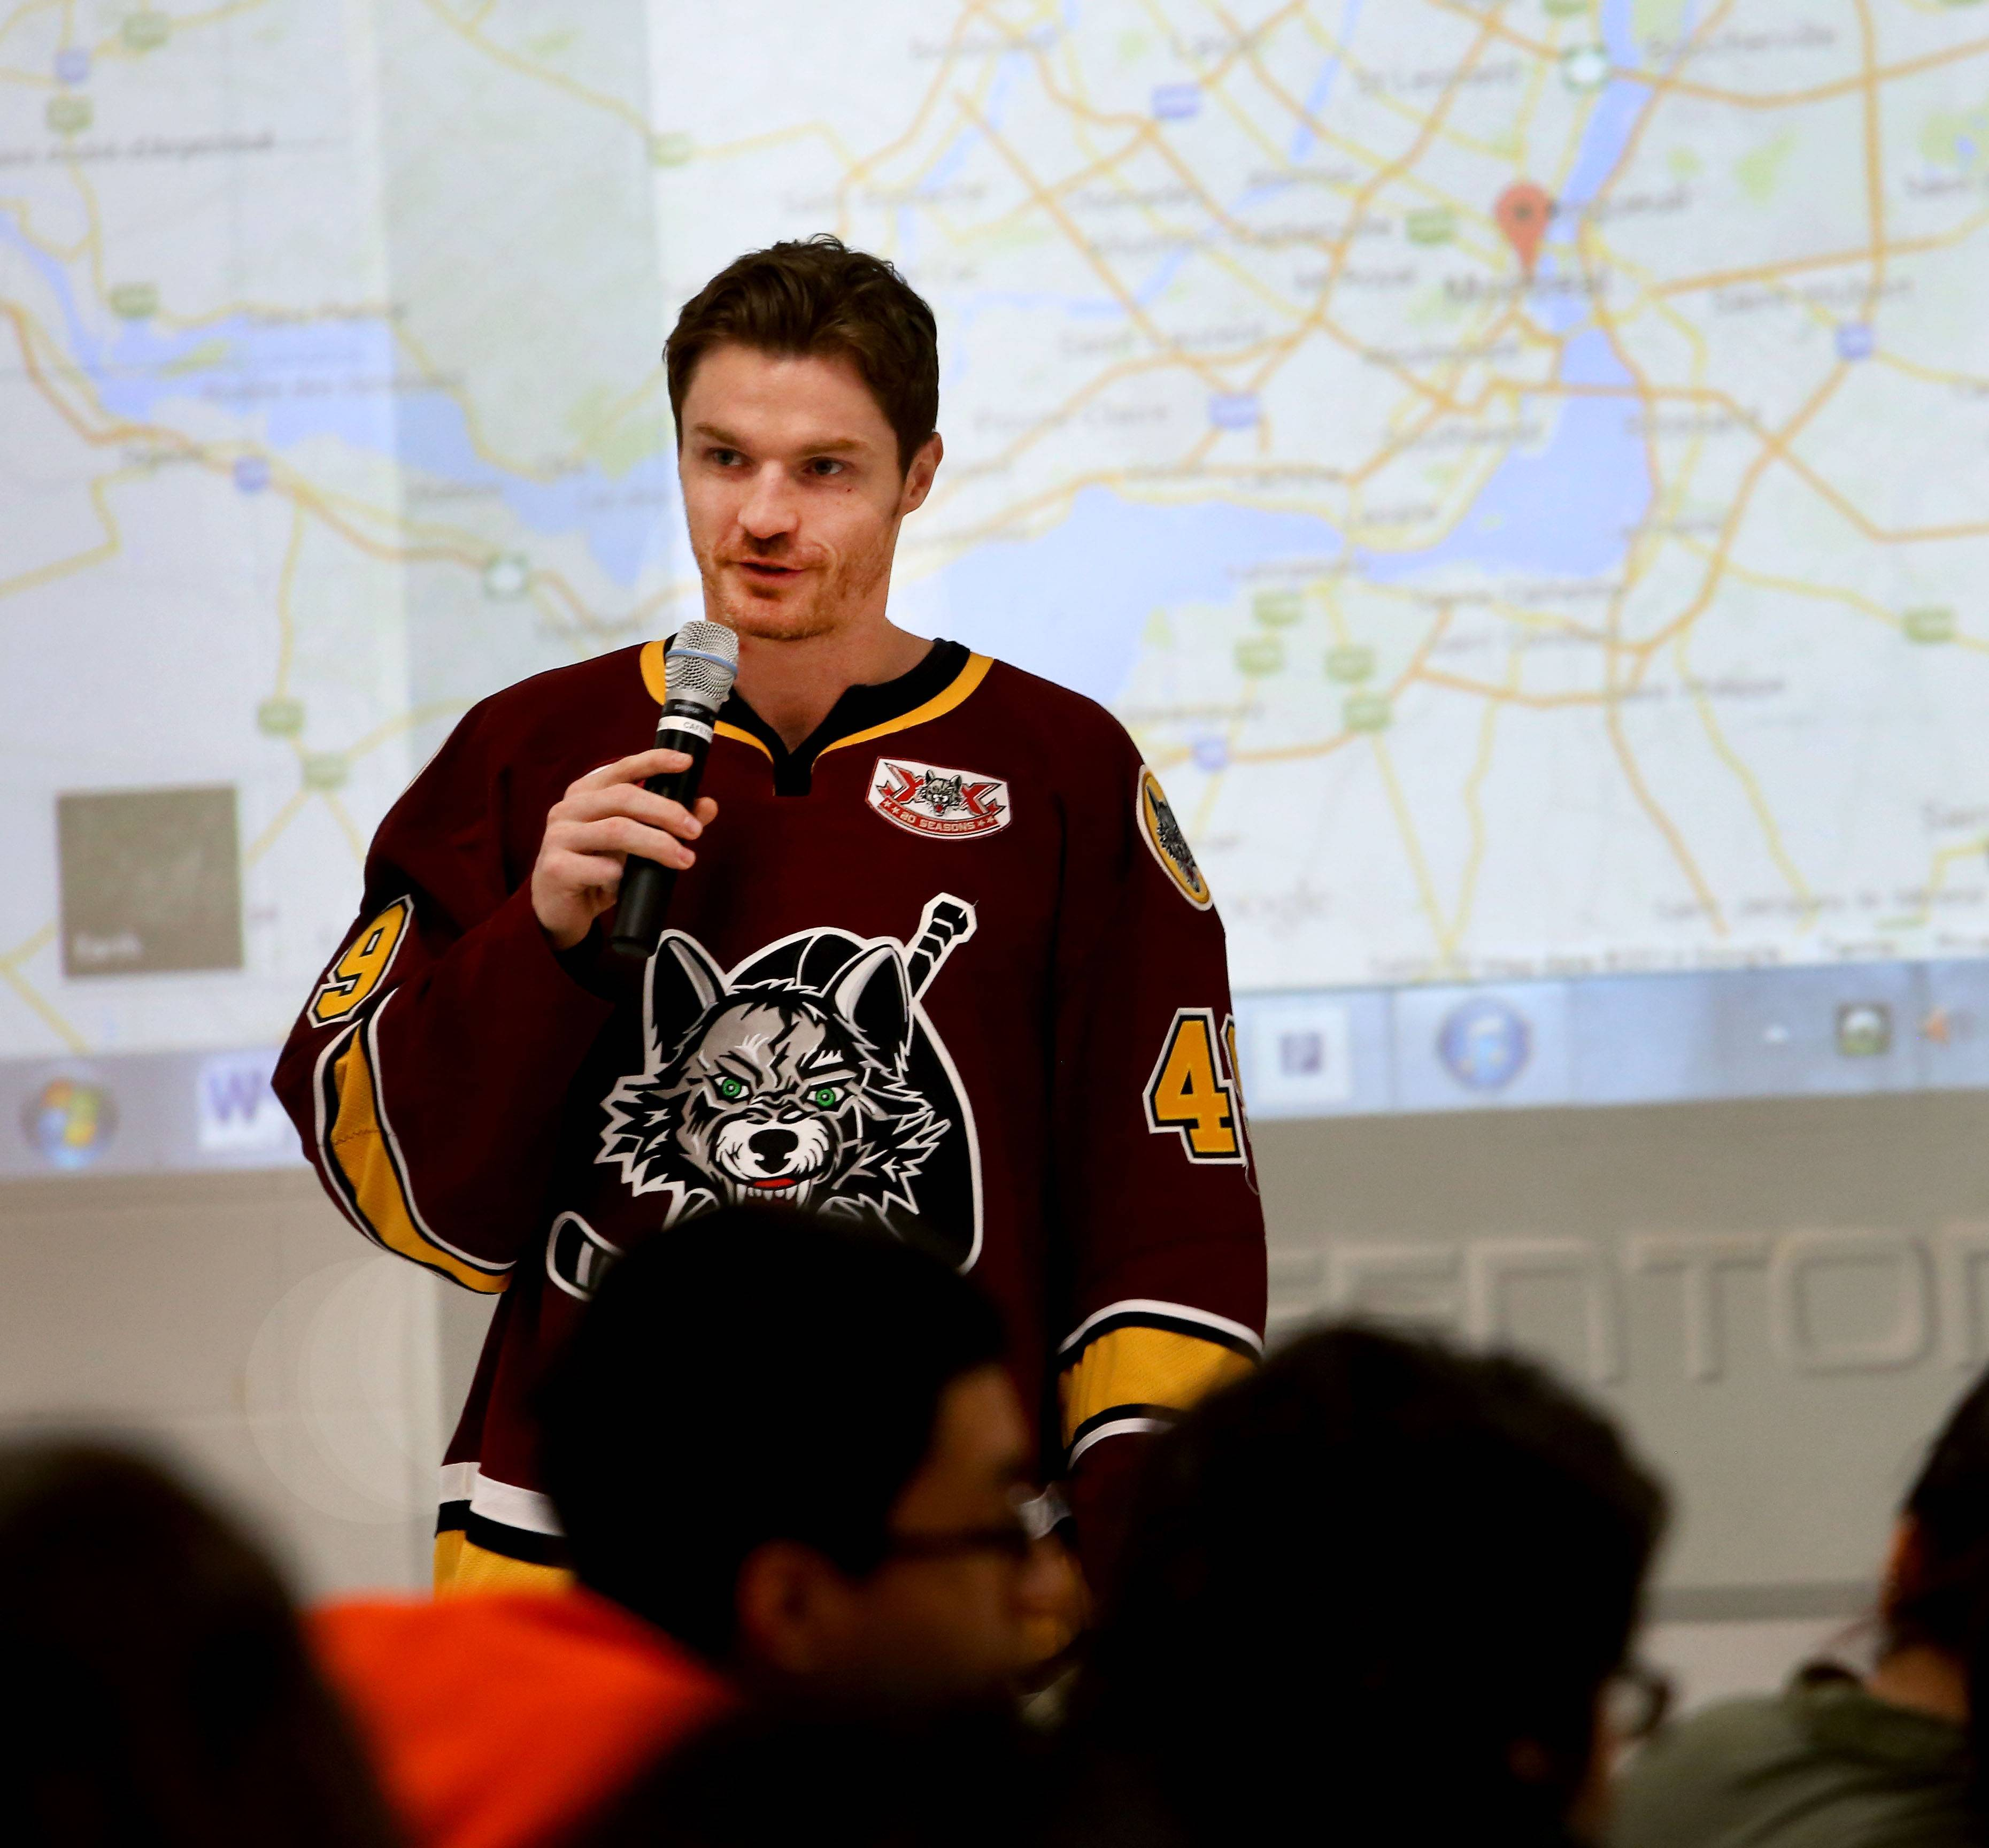 Alexandre Bolduc, a center for the Chicago Wolves, answers questions in French Wednesday during an appearance at Fenton High School.